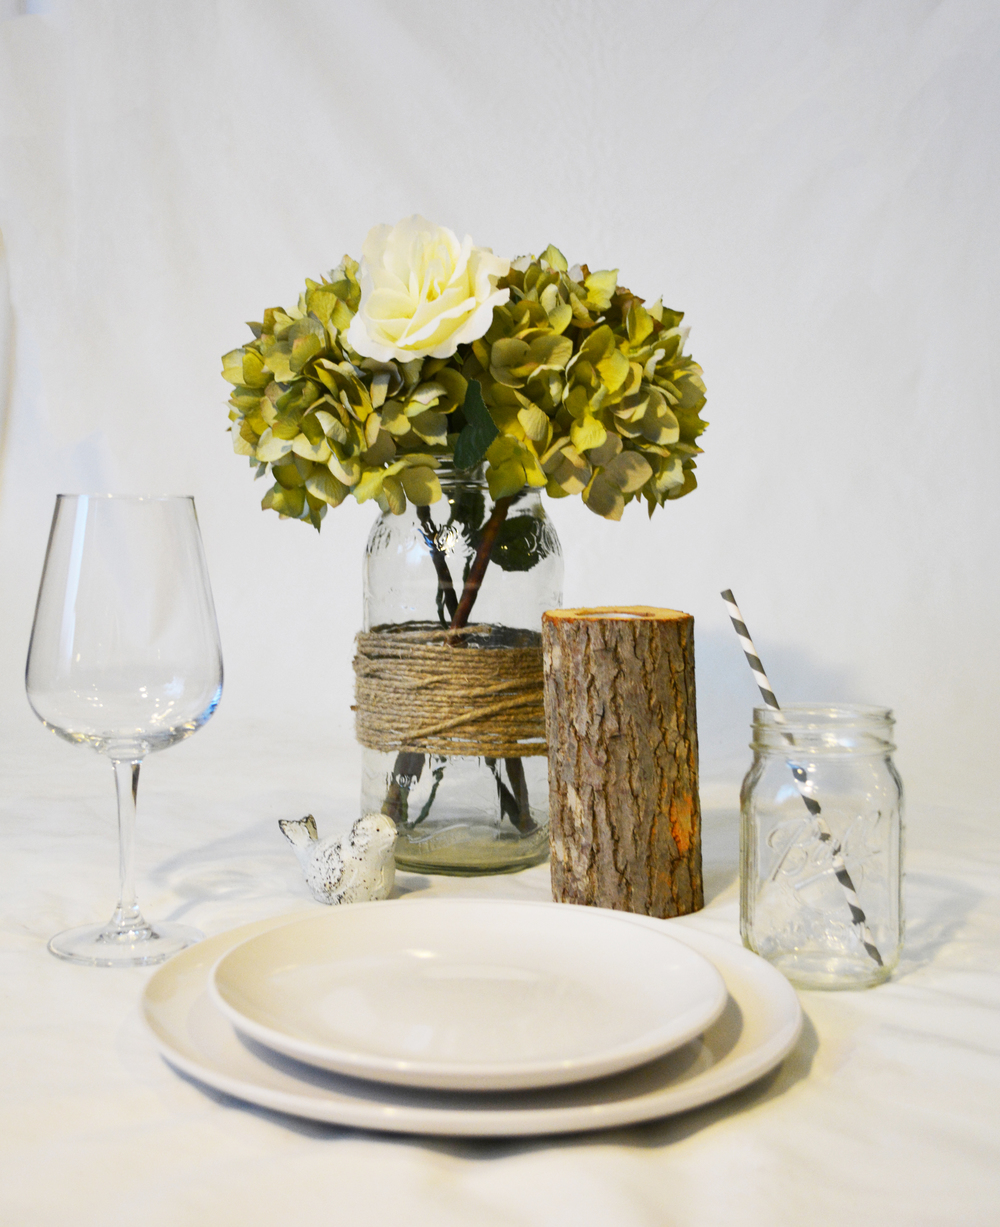 Example Table Setting : Porcelain Farm Plates, Mason Jar, Wine Glass, and Mock Centerpiece